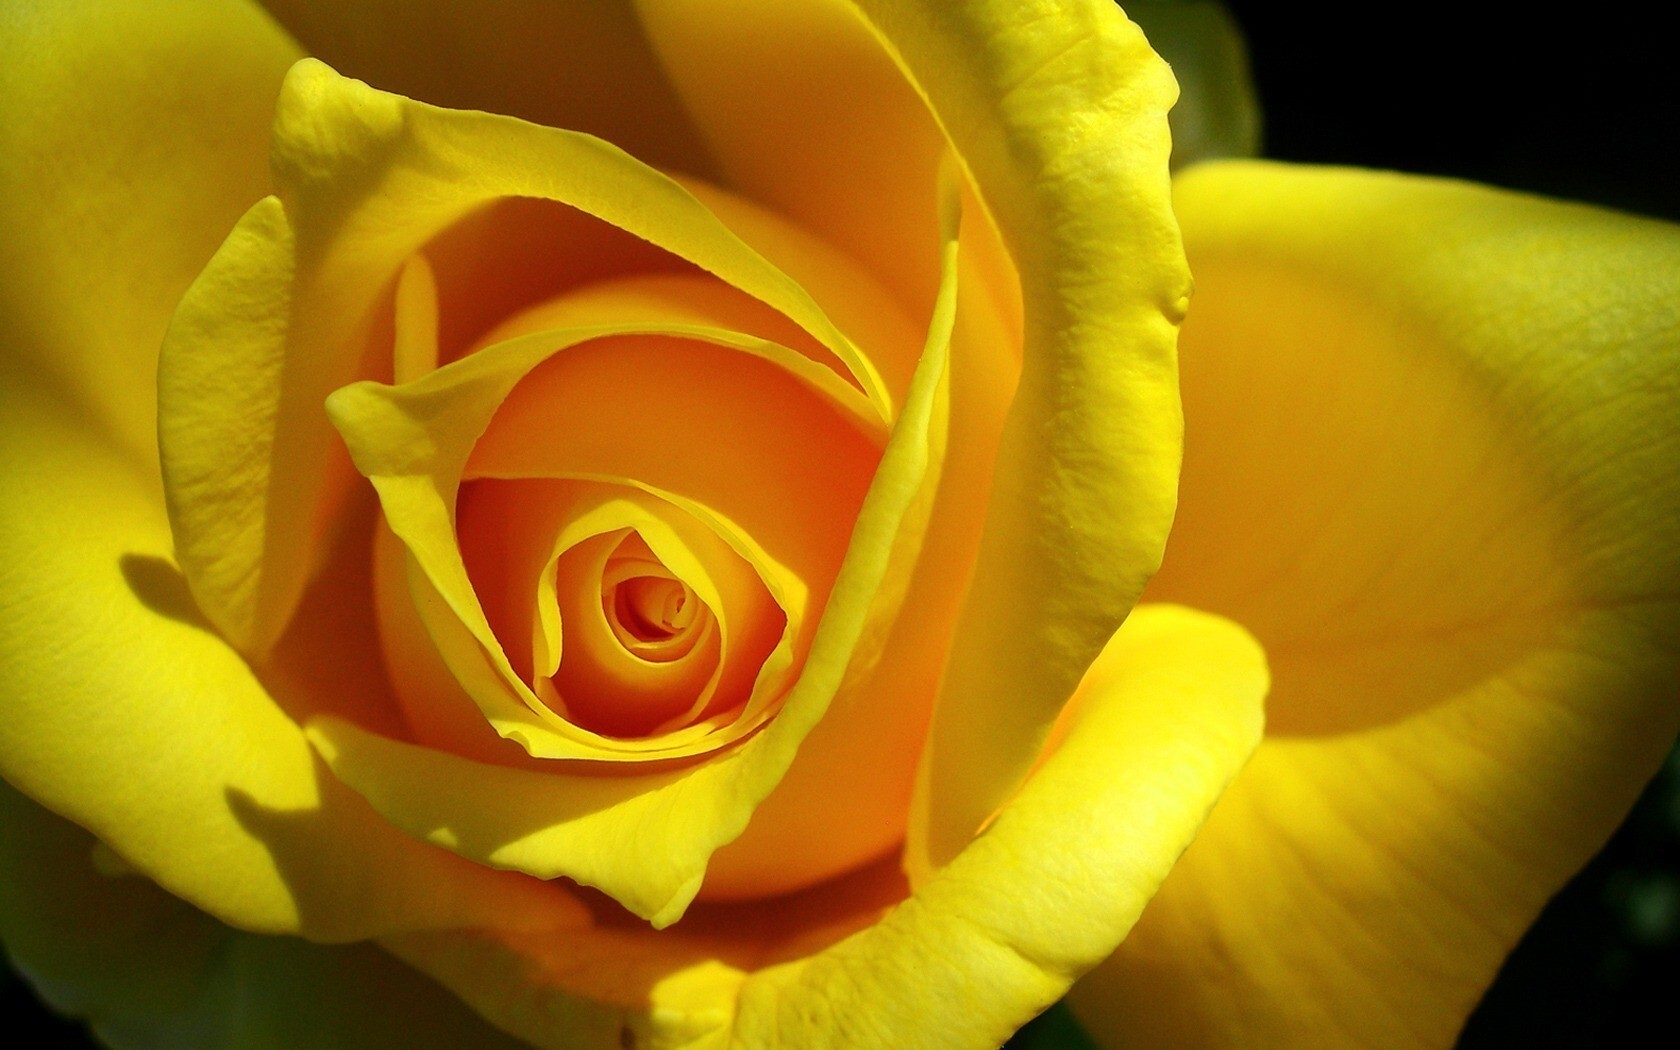 yellow rose wallpapers close up | hd wallpapers